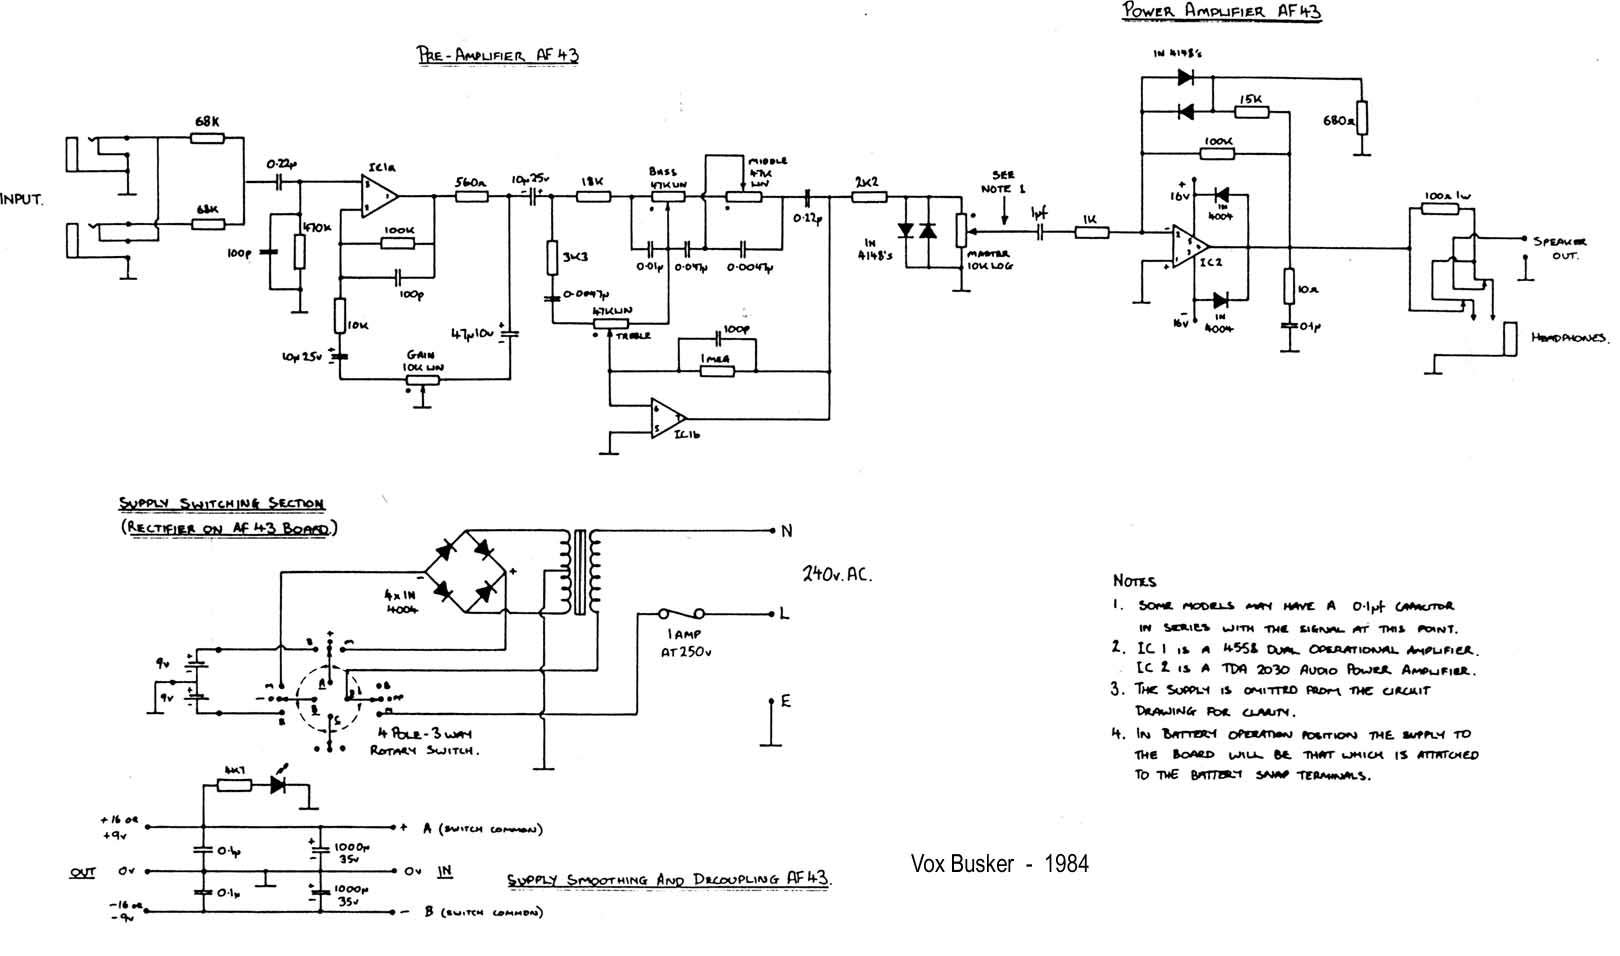 Best Busker Amps, Part II: The Revenge - The Busking Project on ef86 preamp schematic, fender twin reverb schematic, carrier furnace schematic, marshall schematic, ac15 schematic, fender frontman 212r schematic, fender bassman 50 schematic, fender 5150 schematic, ac30 schematic, silvertone 1482 schematic, mxr phase 100 schematic, mesa boogie dual rectifier schematic, amp schematic, matchless lightning schematic, silvertone 1481 schematic, fender stage 160 schematic, roland jc120 schematic, pignose g40v schematic, speakers schematic,